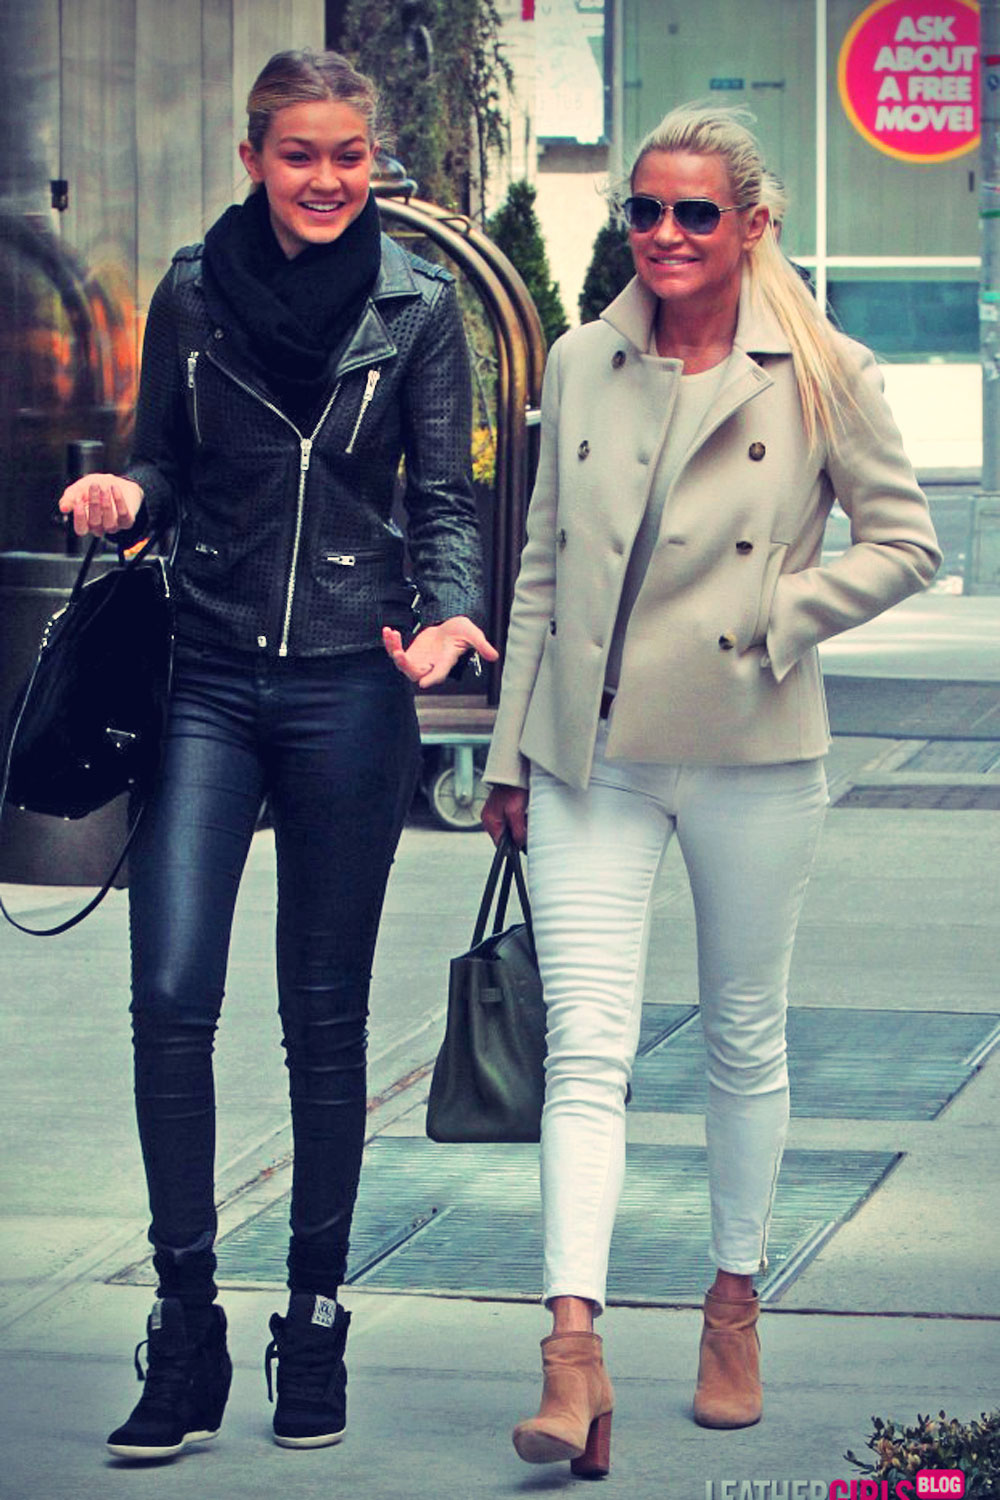 Yolanda Foster and her daughter Gigi out and about Soho